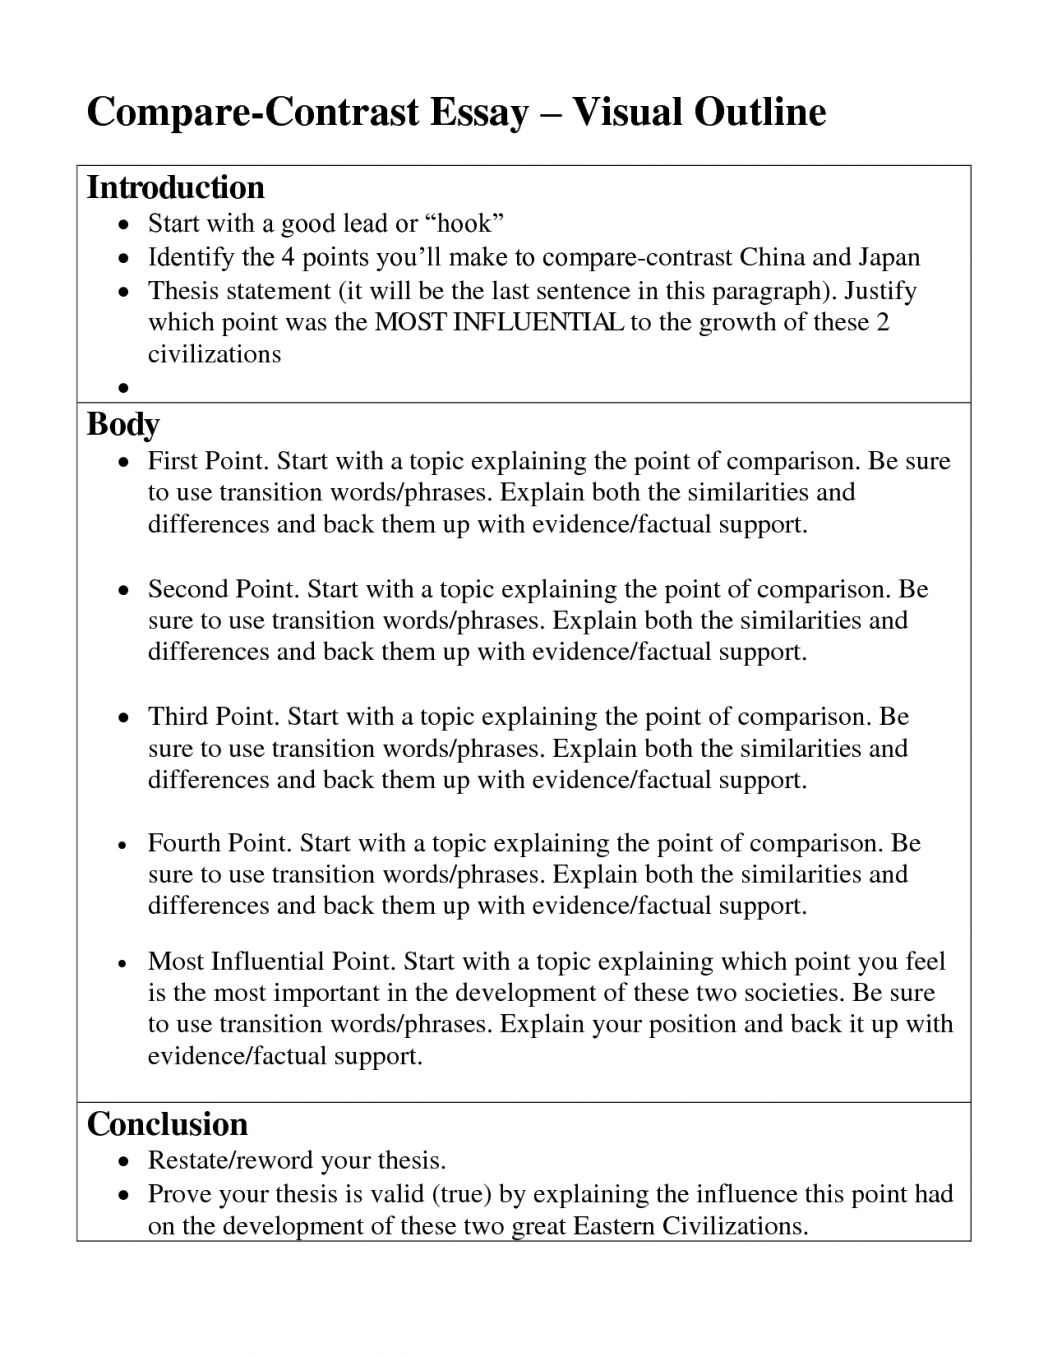 008 Make Money Writing Essays How To Write Essay Outline Template Student For 1048x1356 Best Uni College Scholarship Full